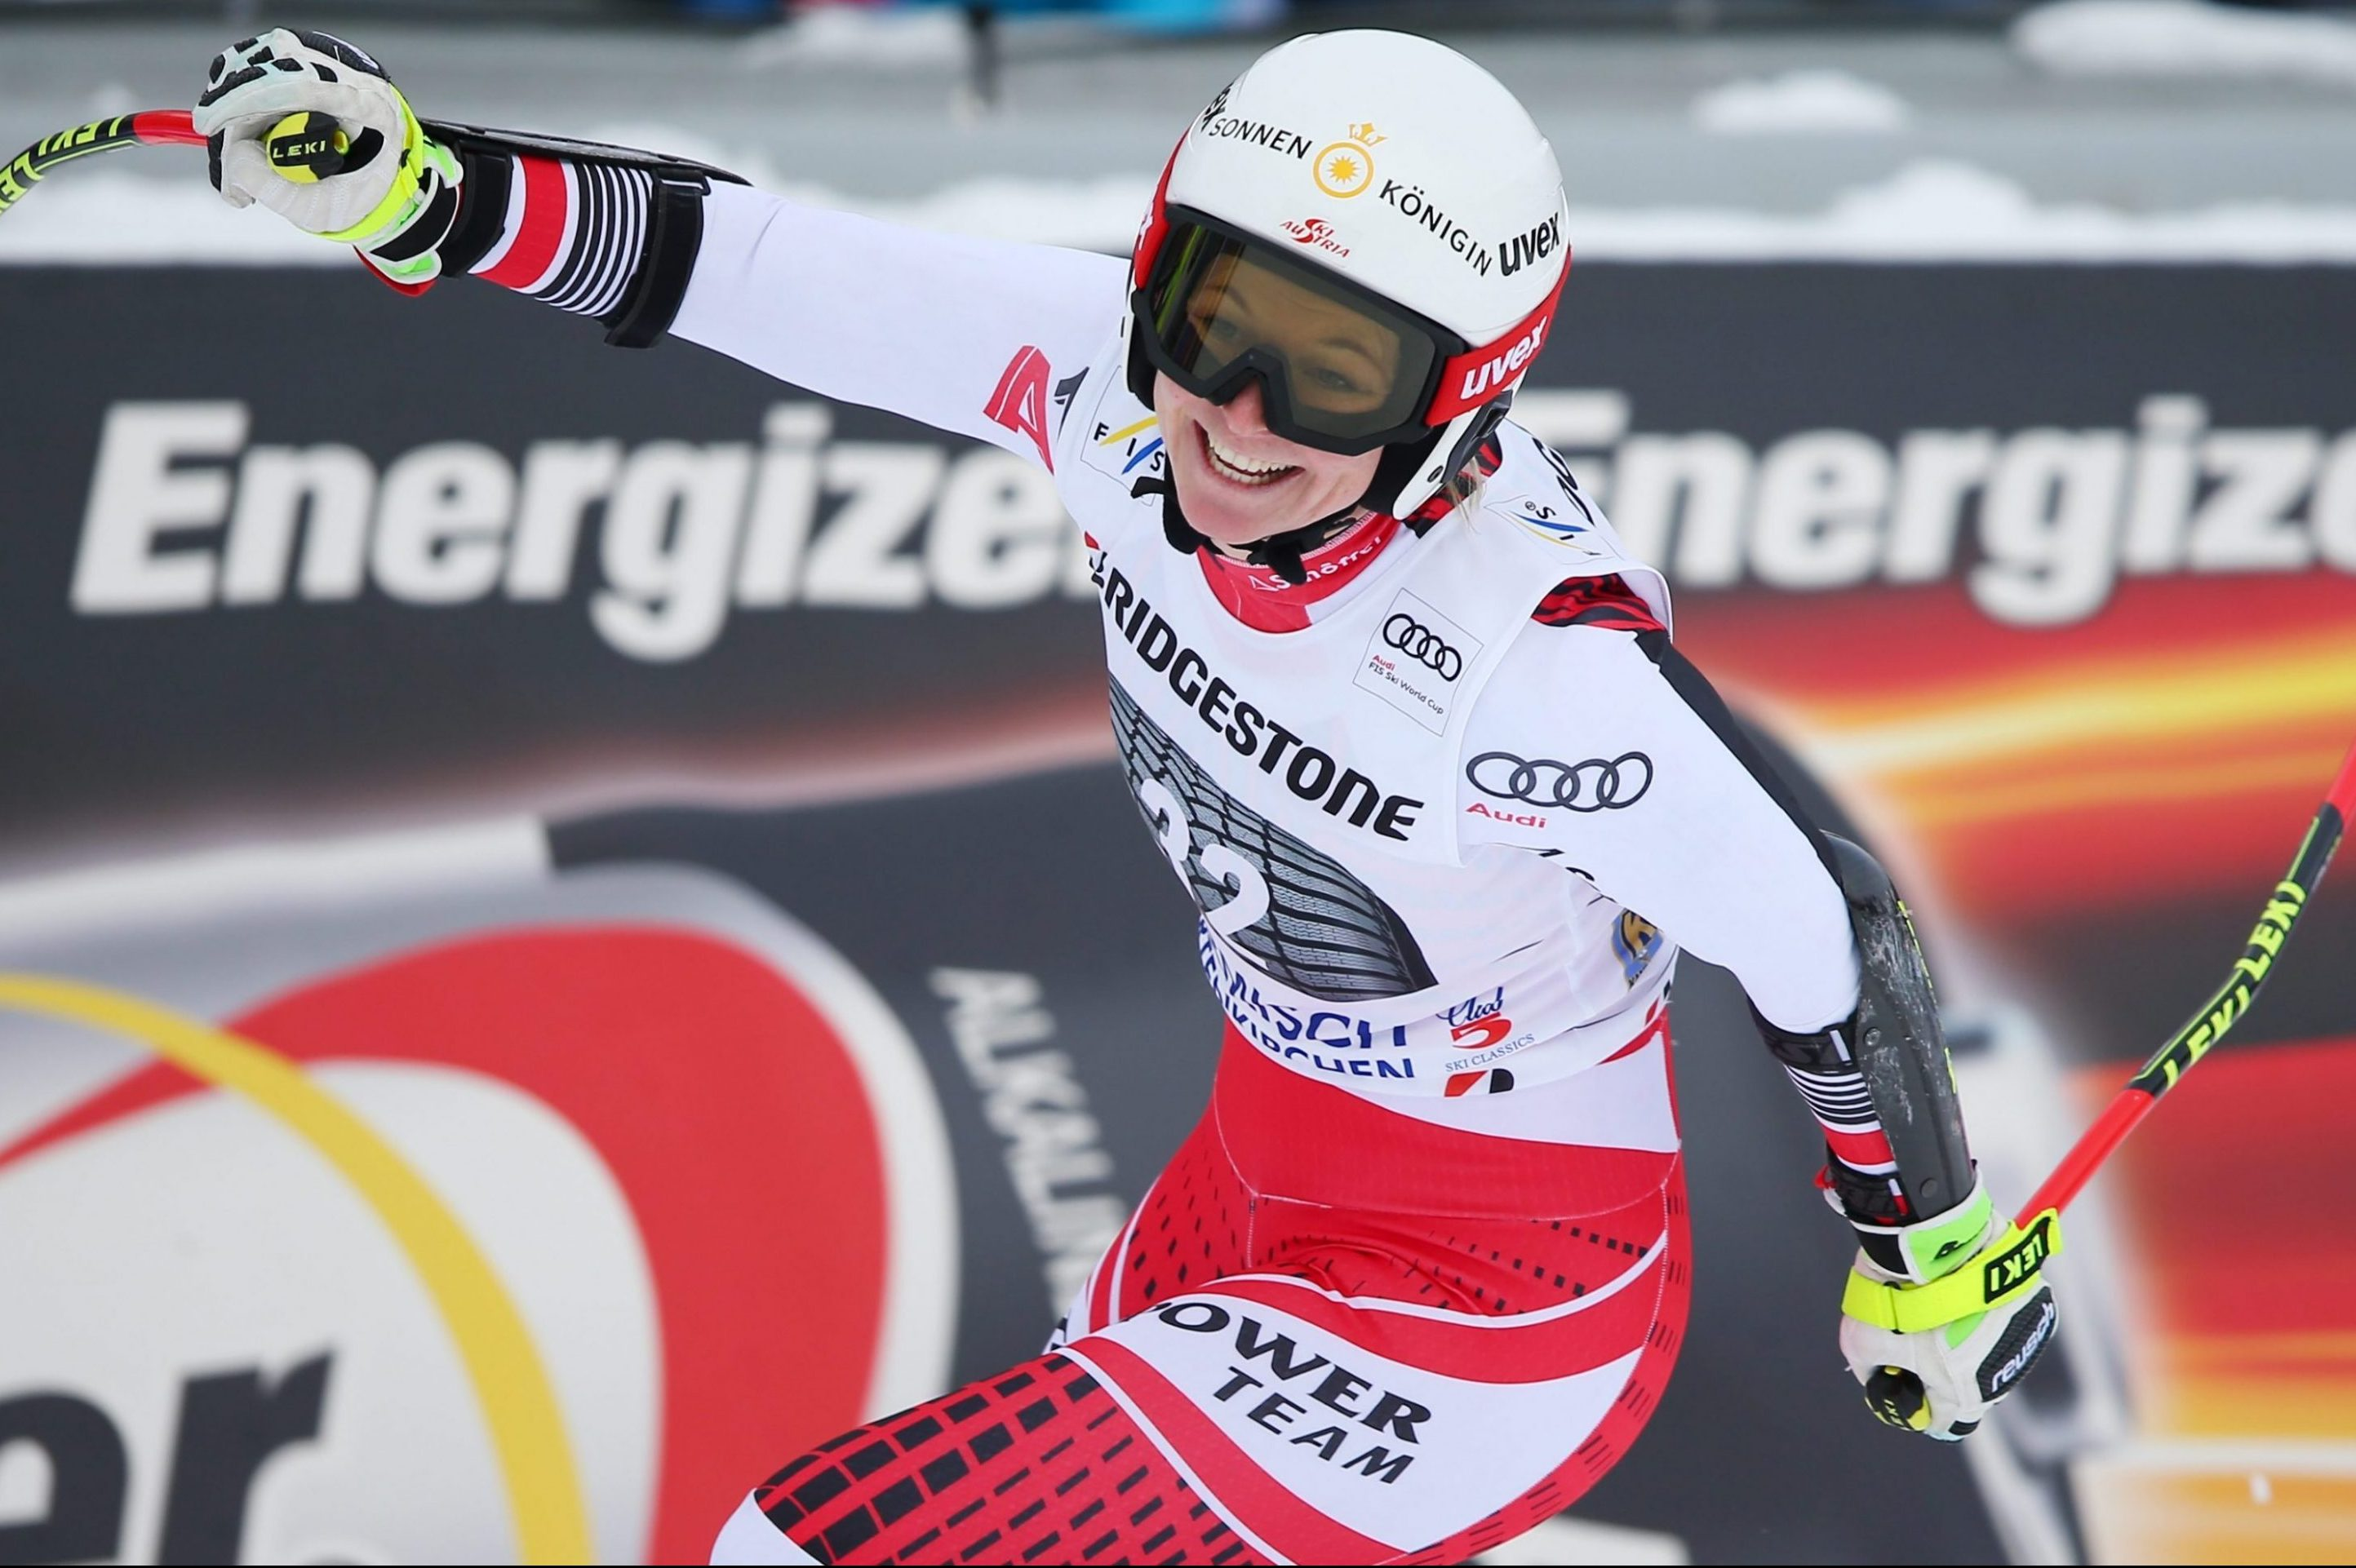 Platz 12. in Garmisch-Partenkirchen